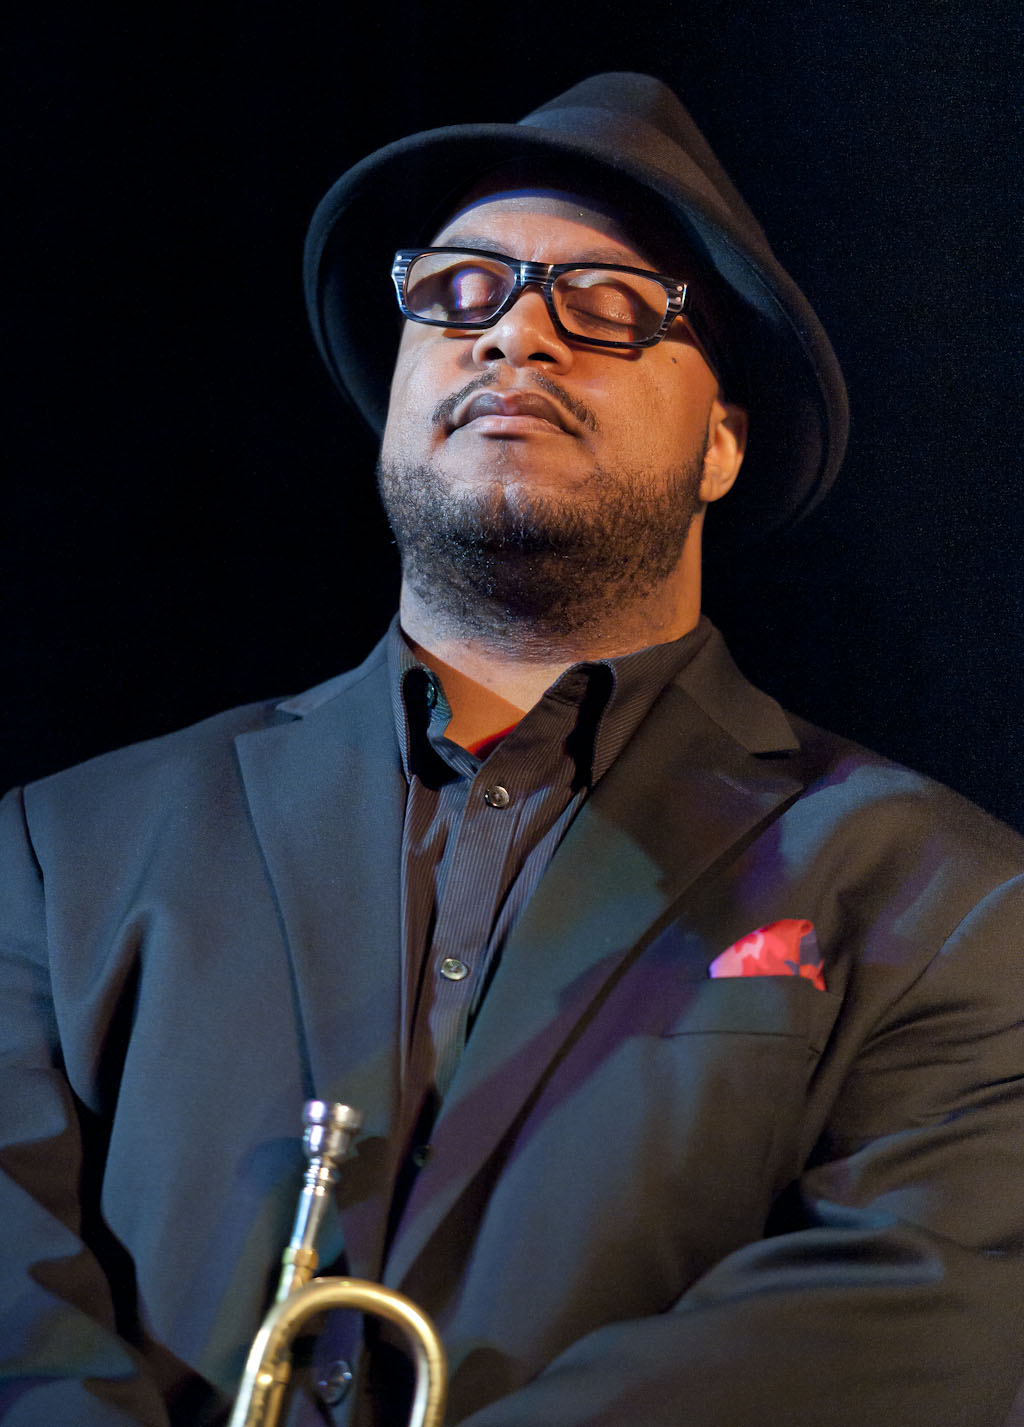 Nicholas payton performs with ninety miles